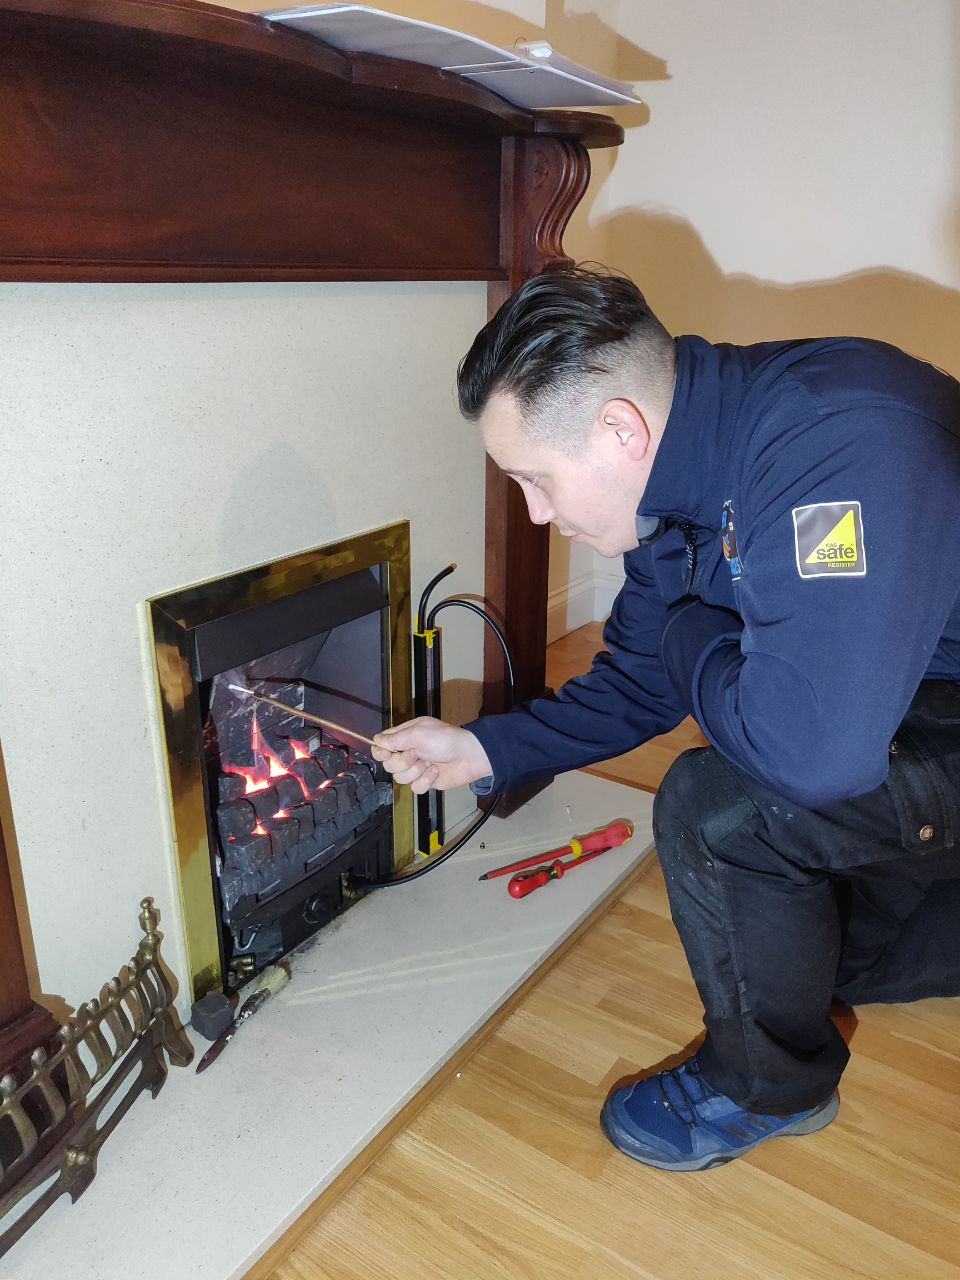 Gas man carrying out a spillage test